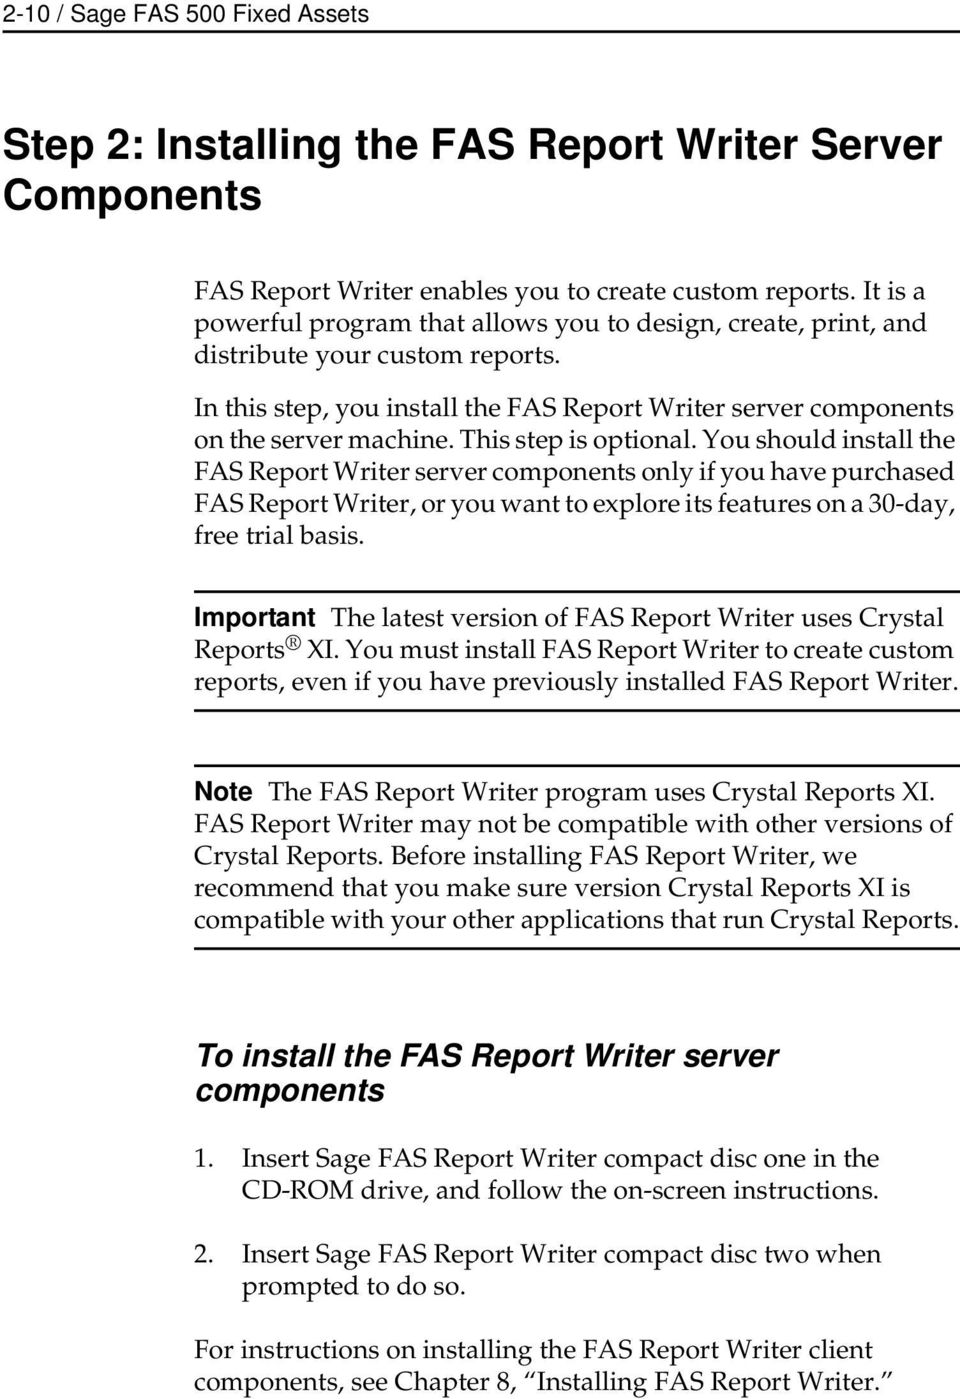 This step is optional. You should install the FAS Report Writer server components only if you have purchased FAS Report Writer, or you want to explore its features on a 30-day, free trial basis.